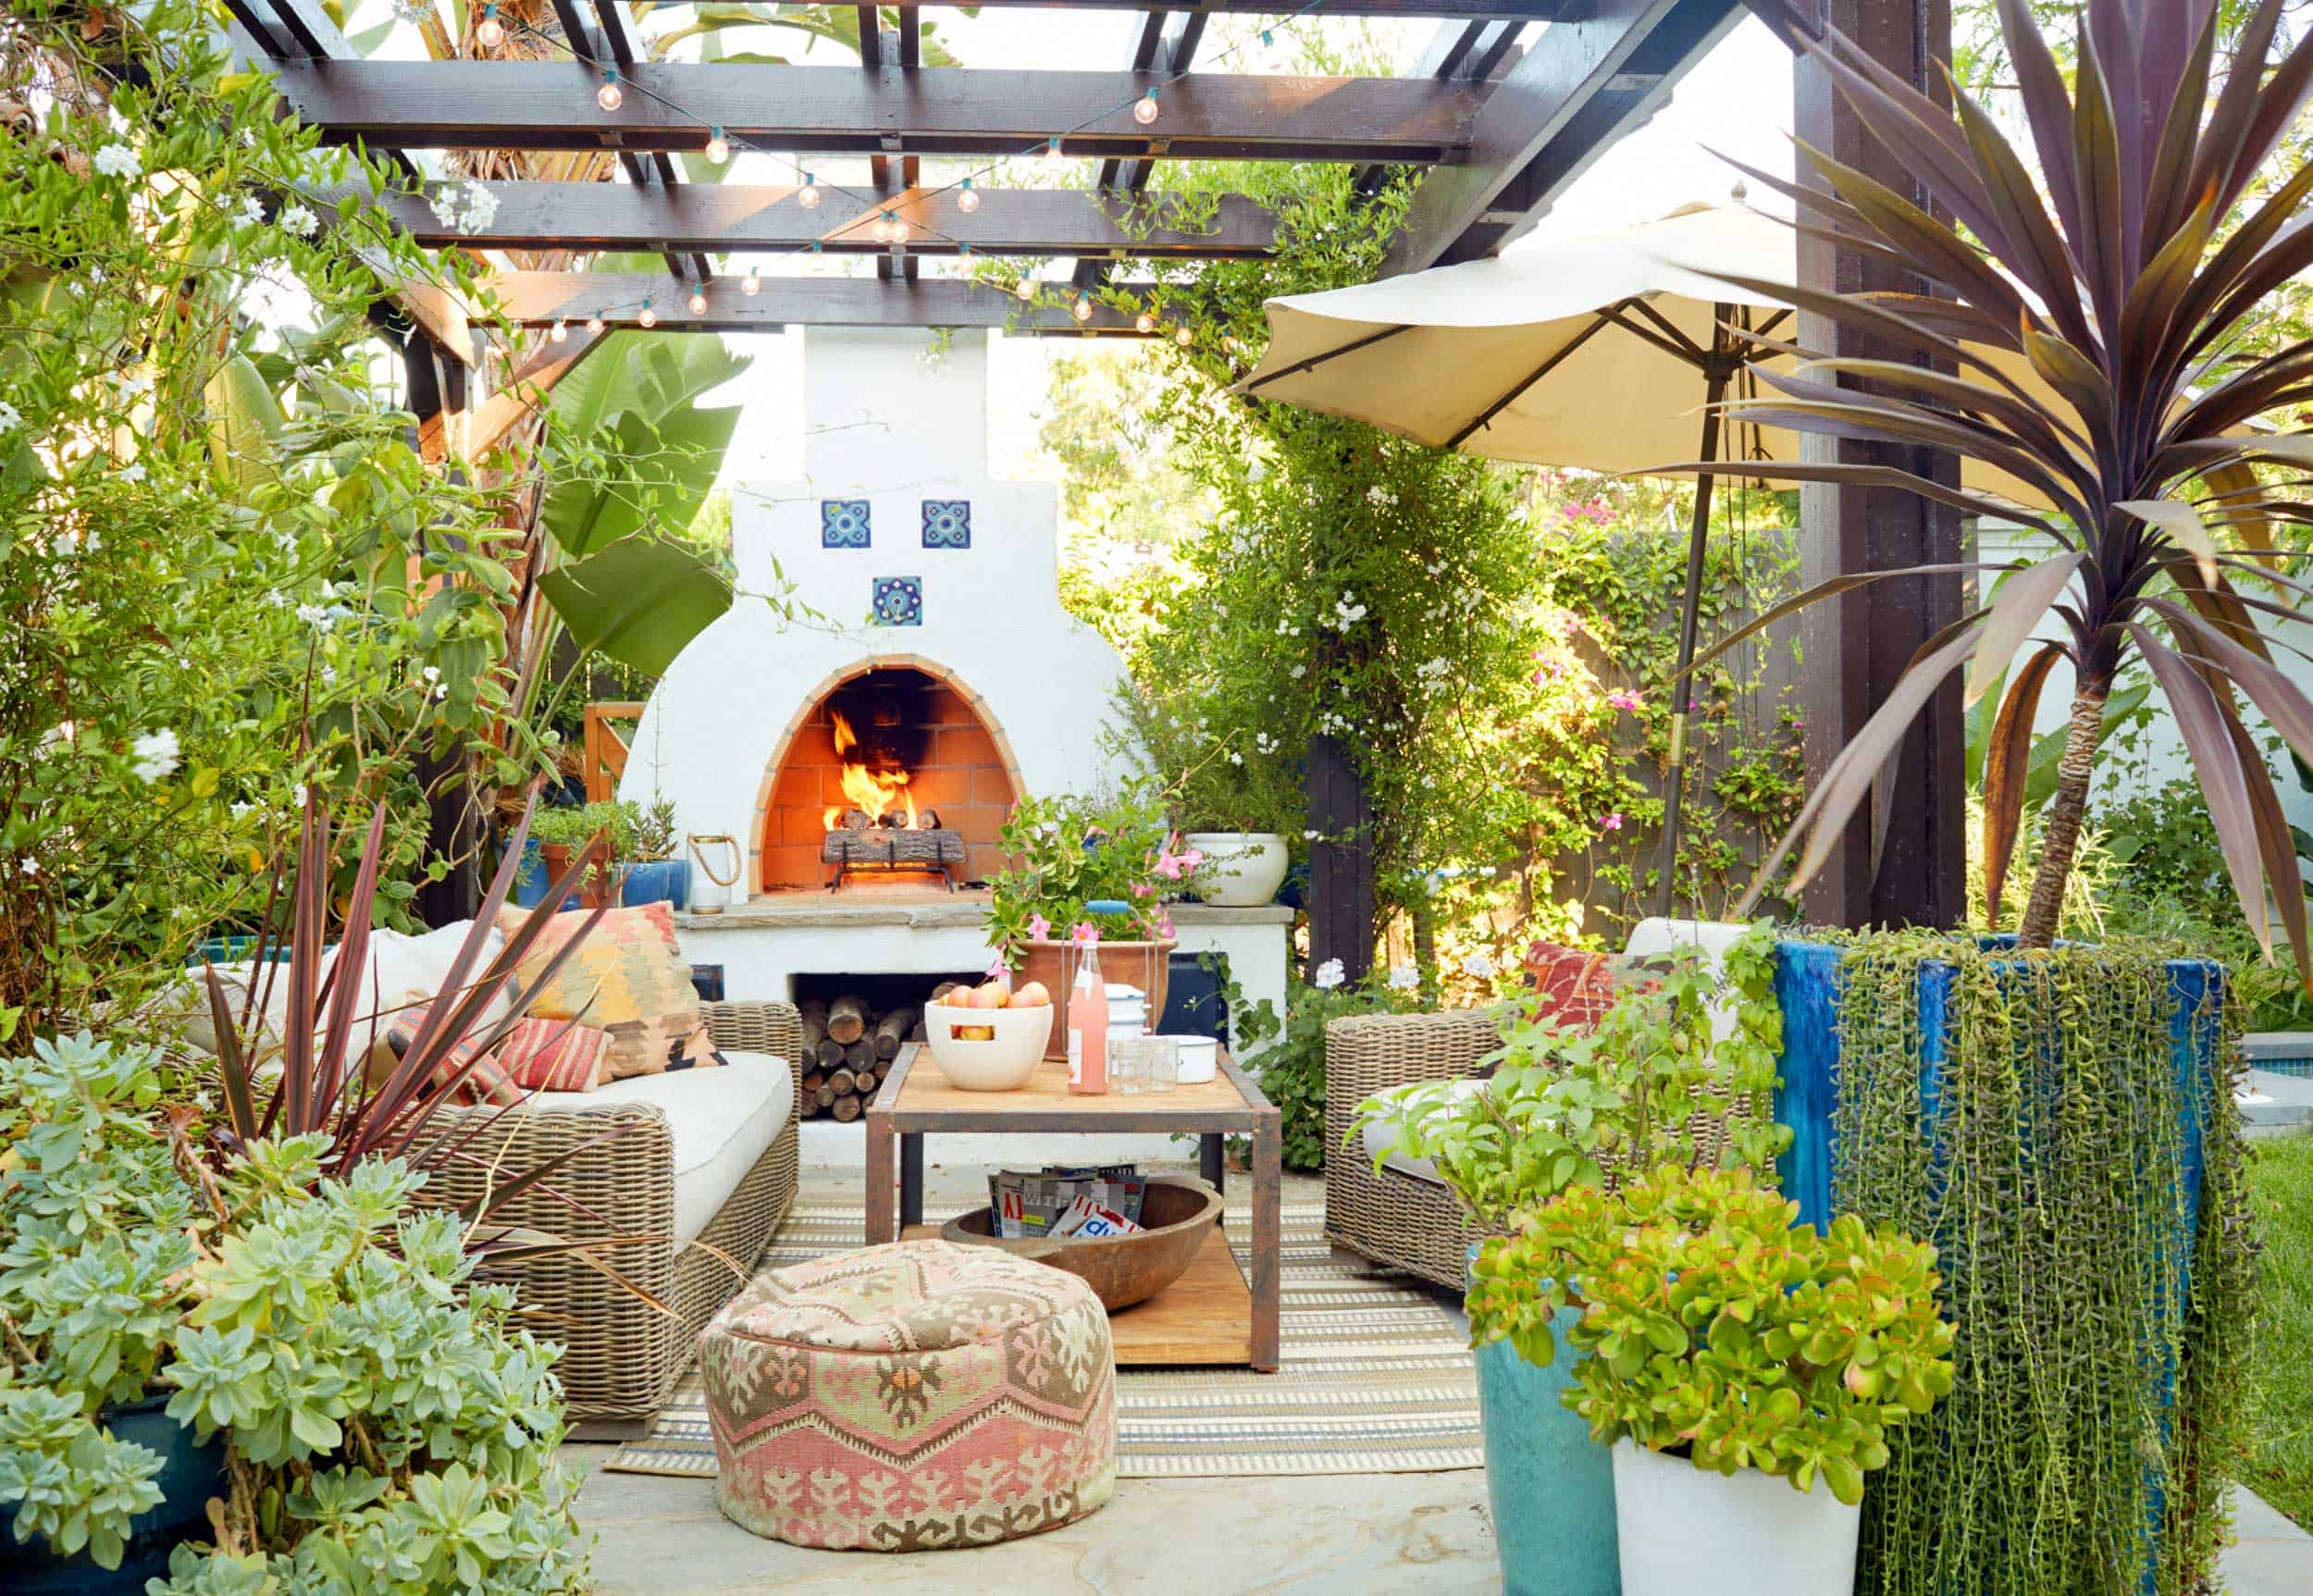 130 Of Our Favorite Patio Outdoor Furniture Picks To Get Summer Started Right Now